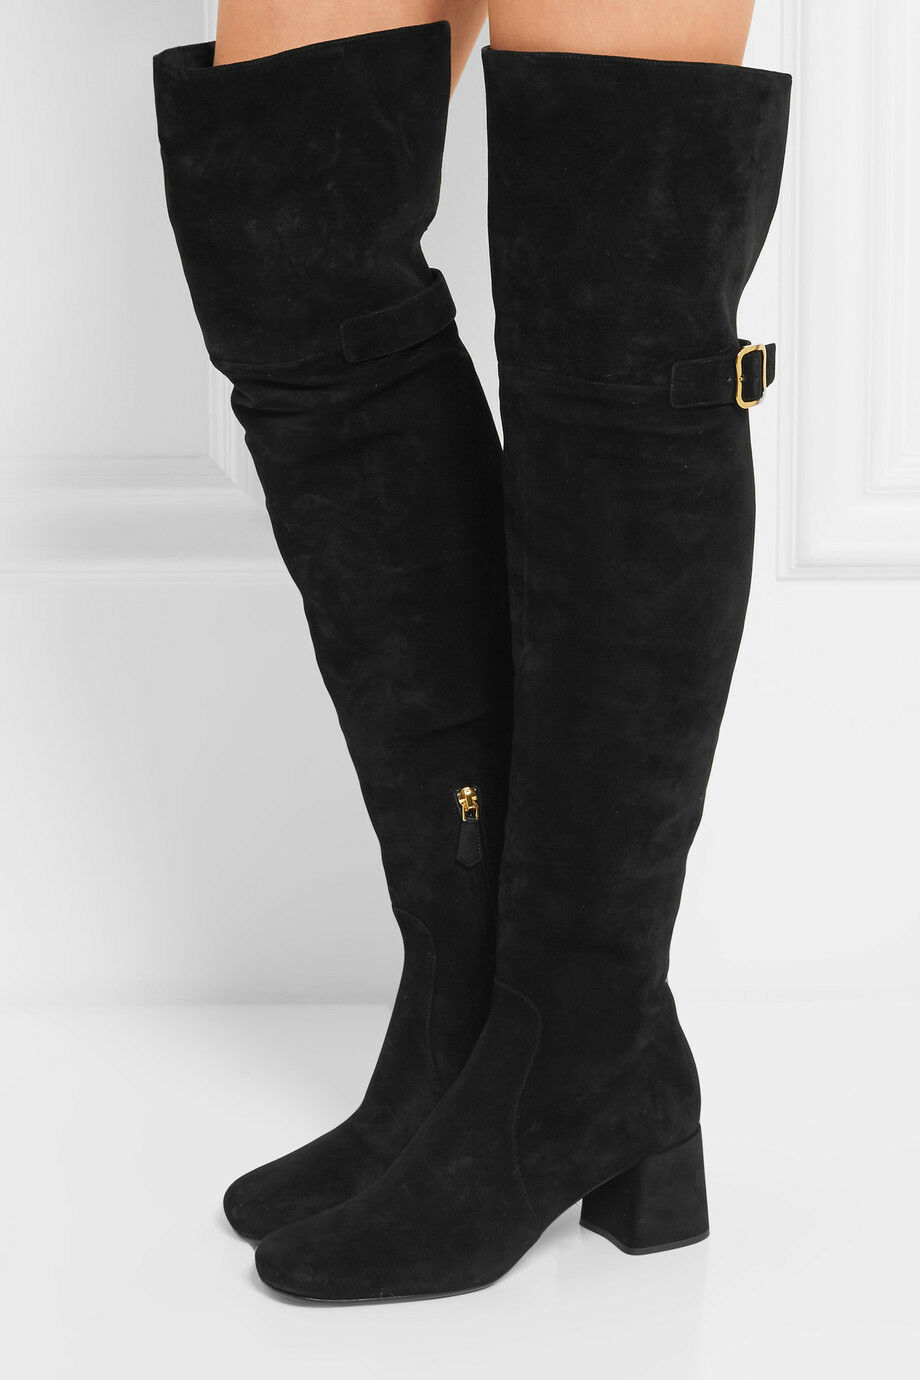 1800  Prada Black Suede Over-The-Knee Boots  Mid Heel Buckle Booties 38.5